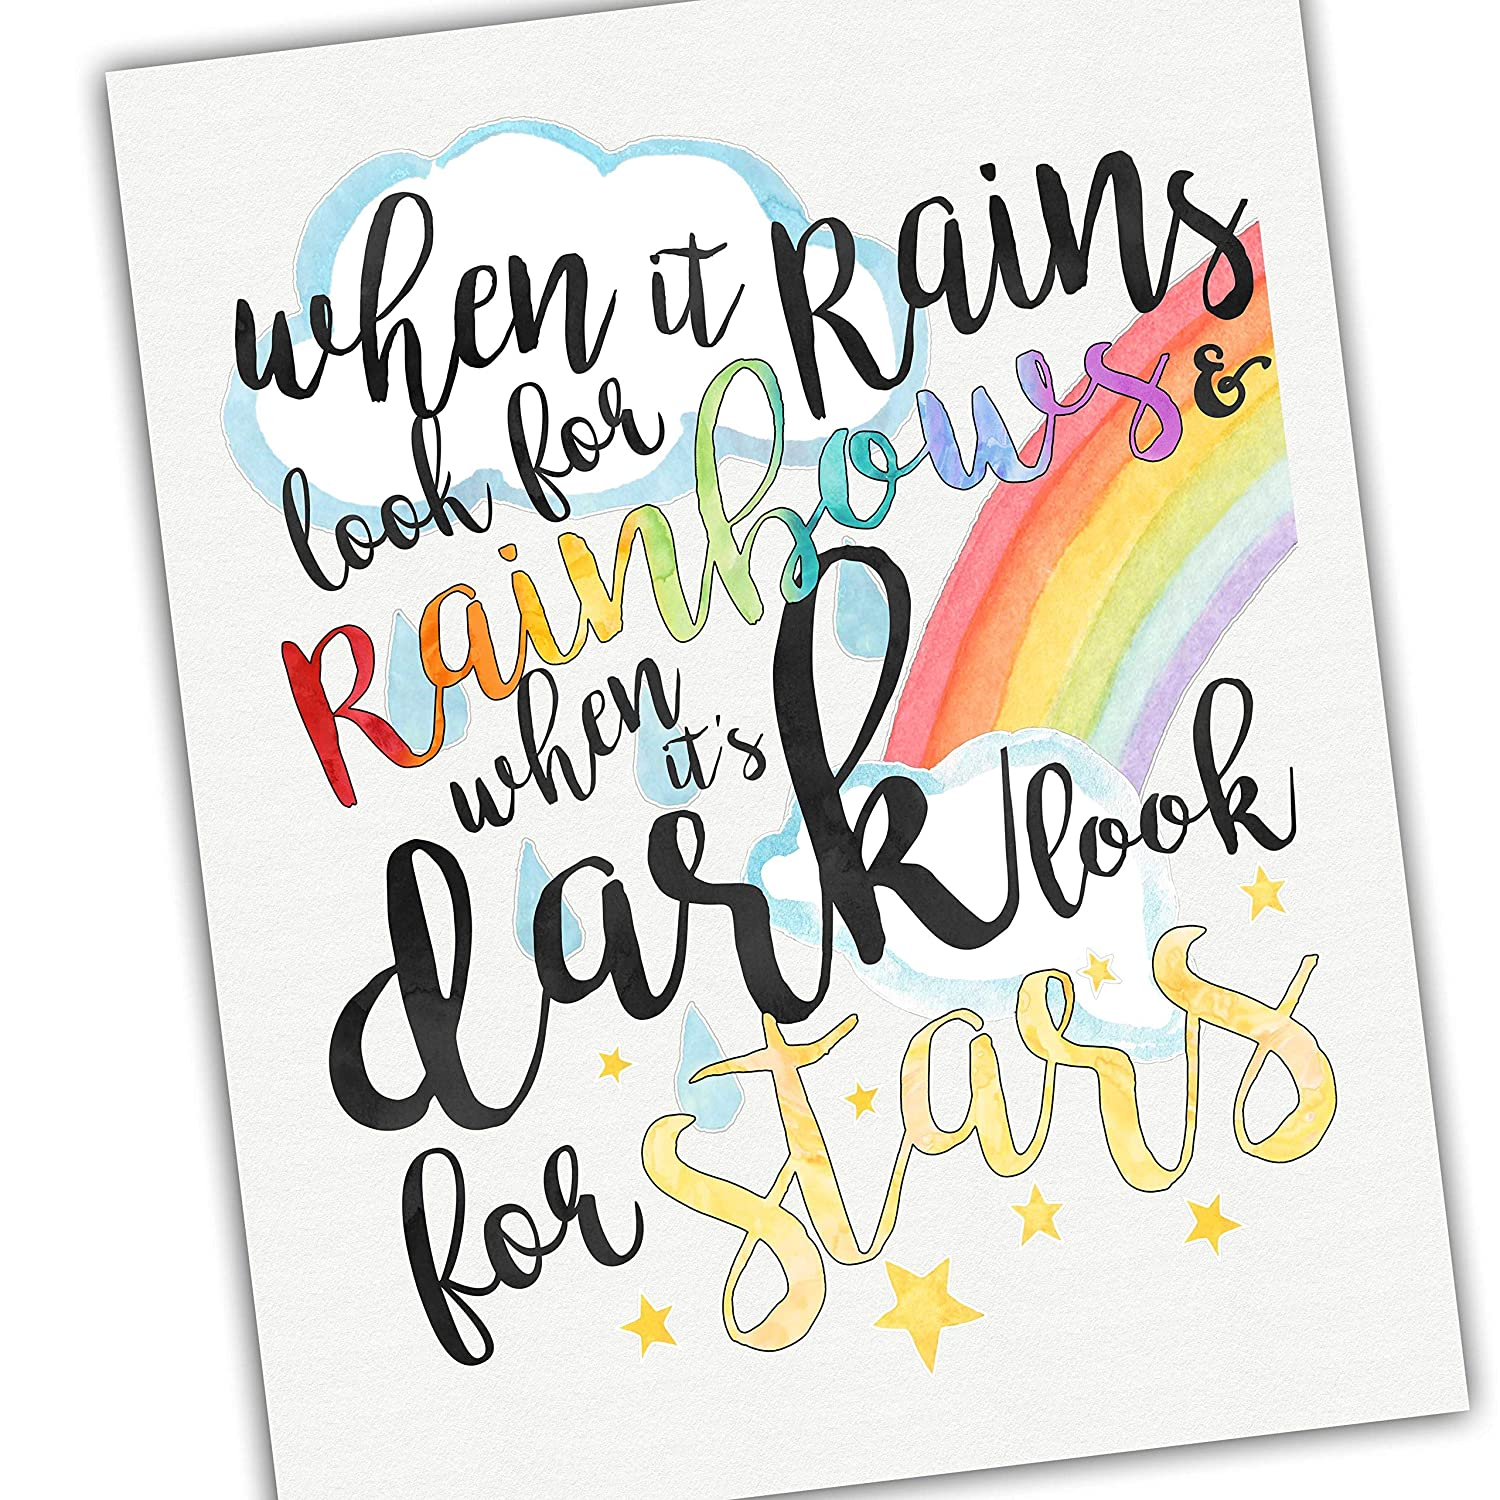 Inspirational Quotes - Watercolors When Rain Some reservation Look it for Manufacturer OFFicial shop Rains